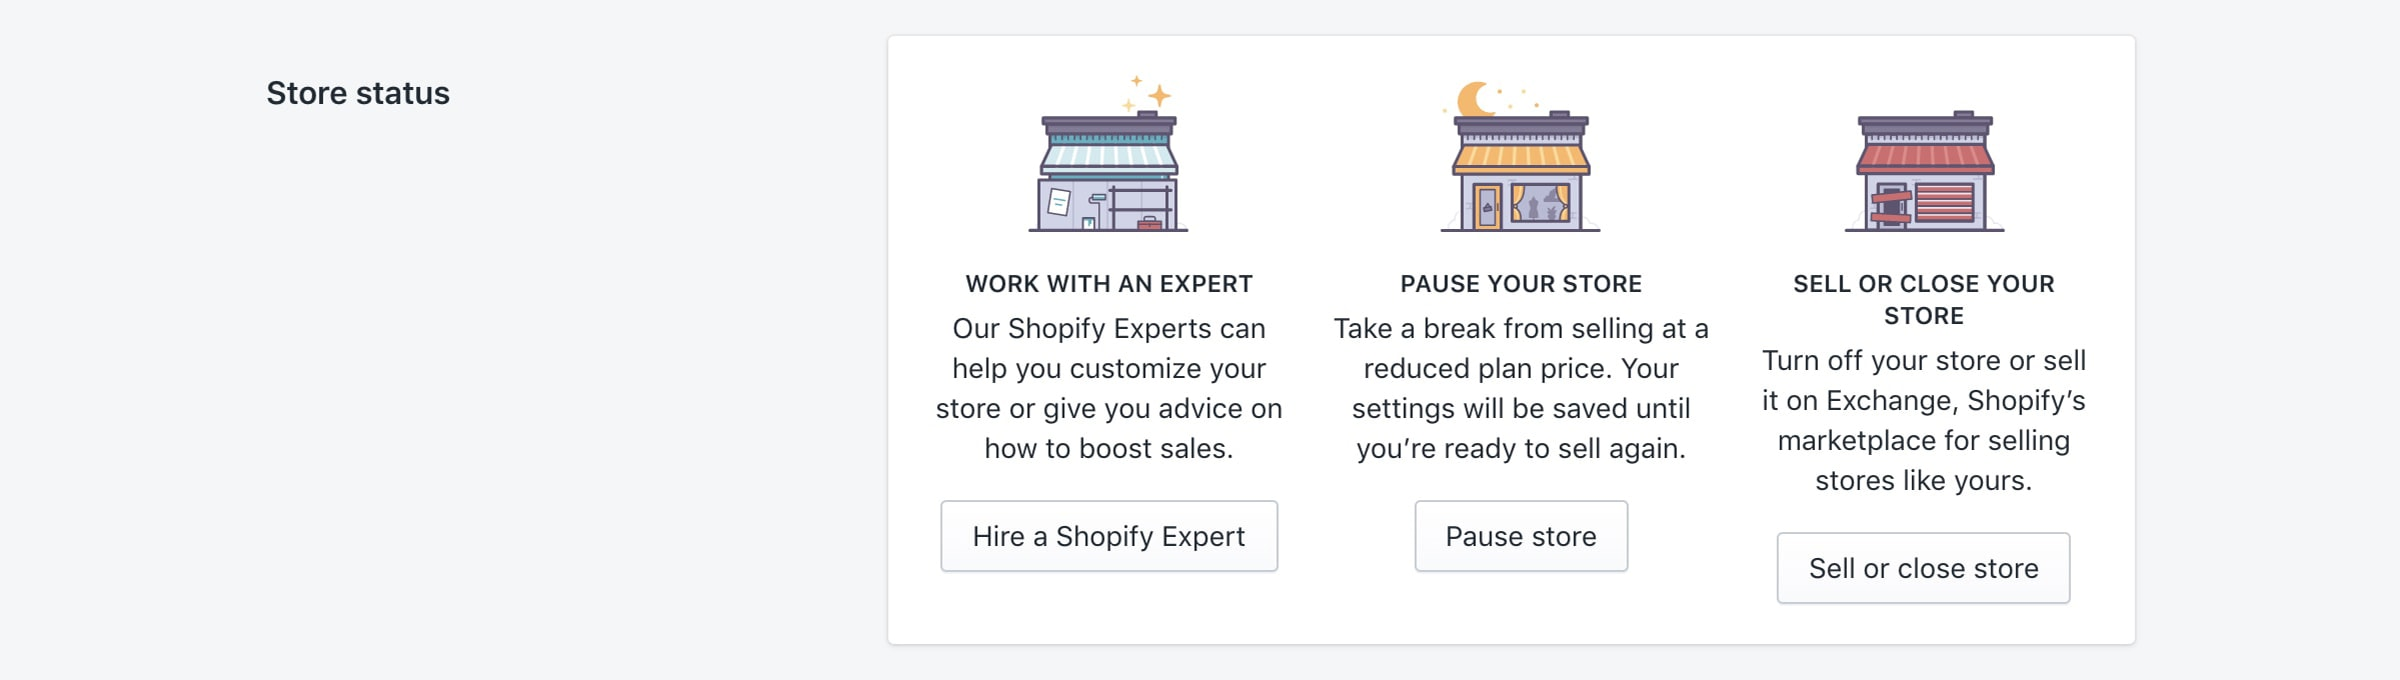 Shopify pause and close store options.